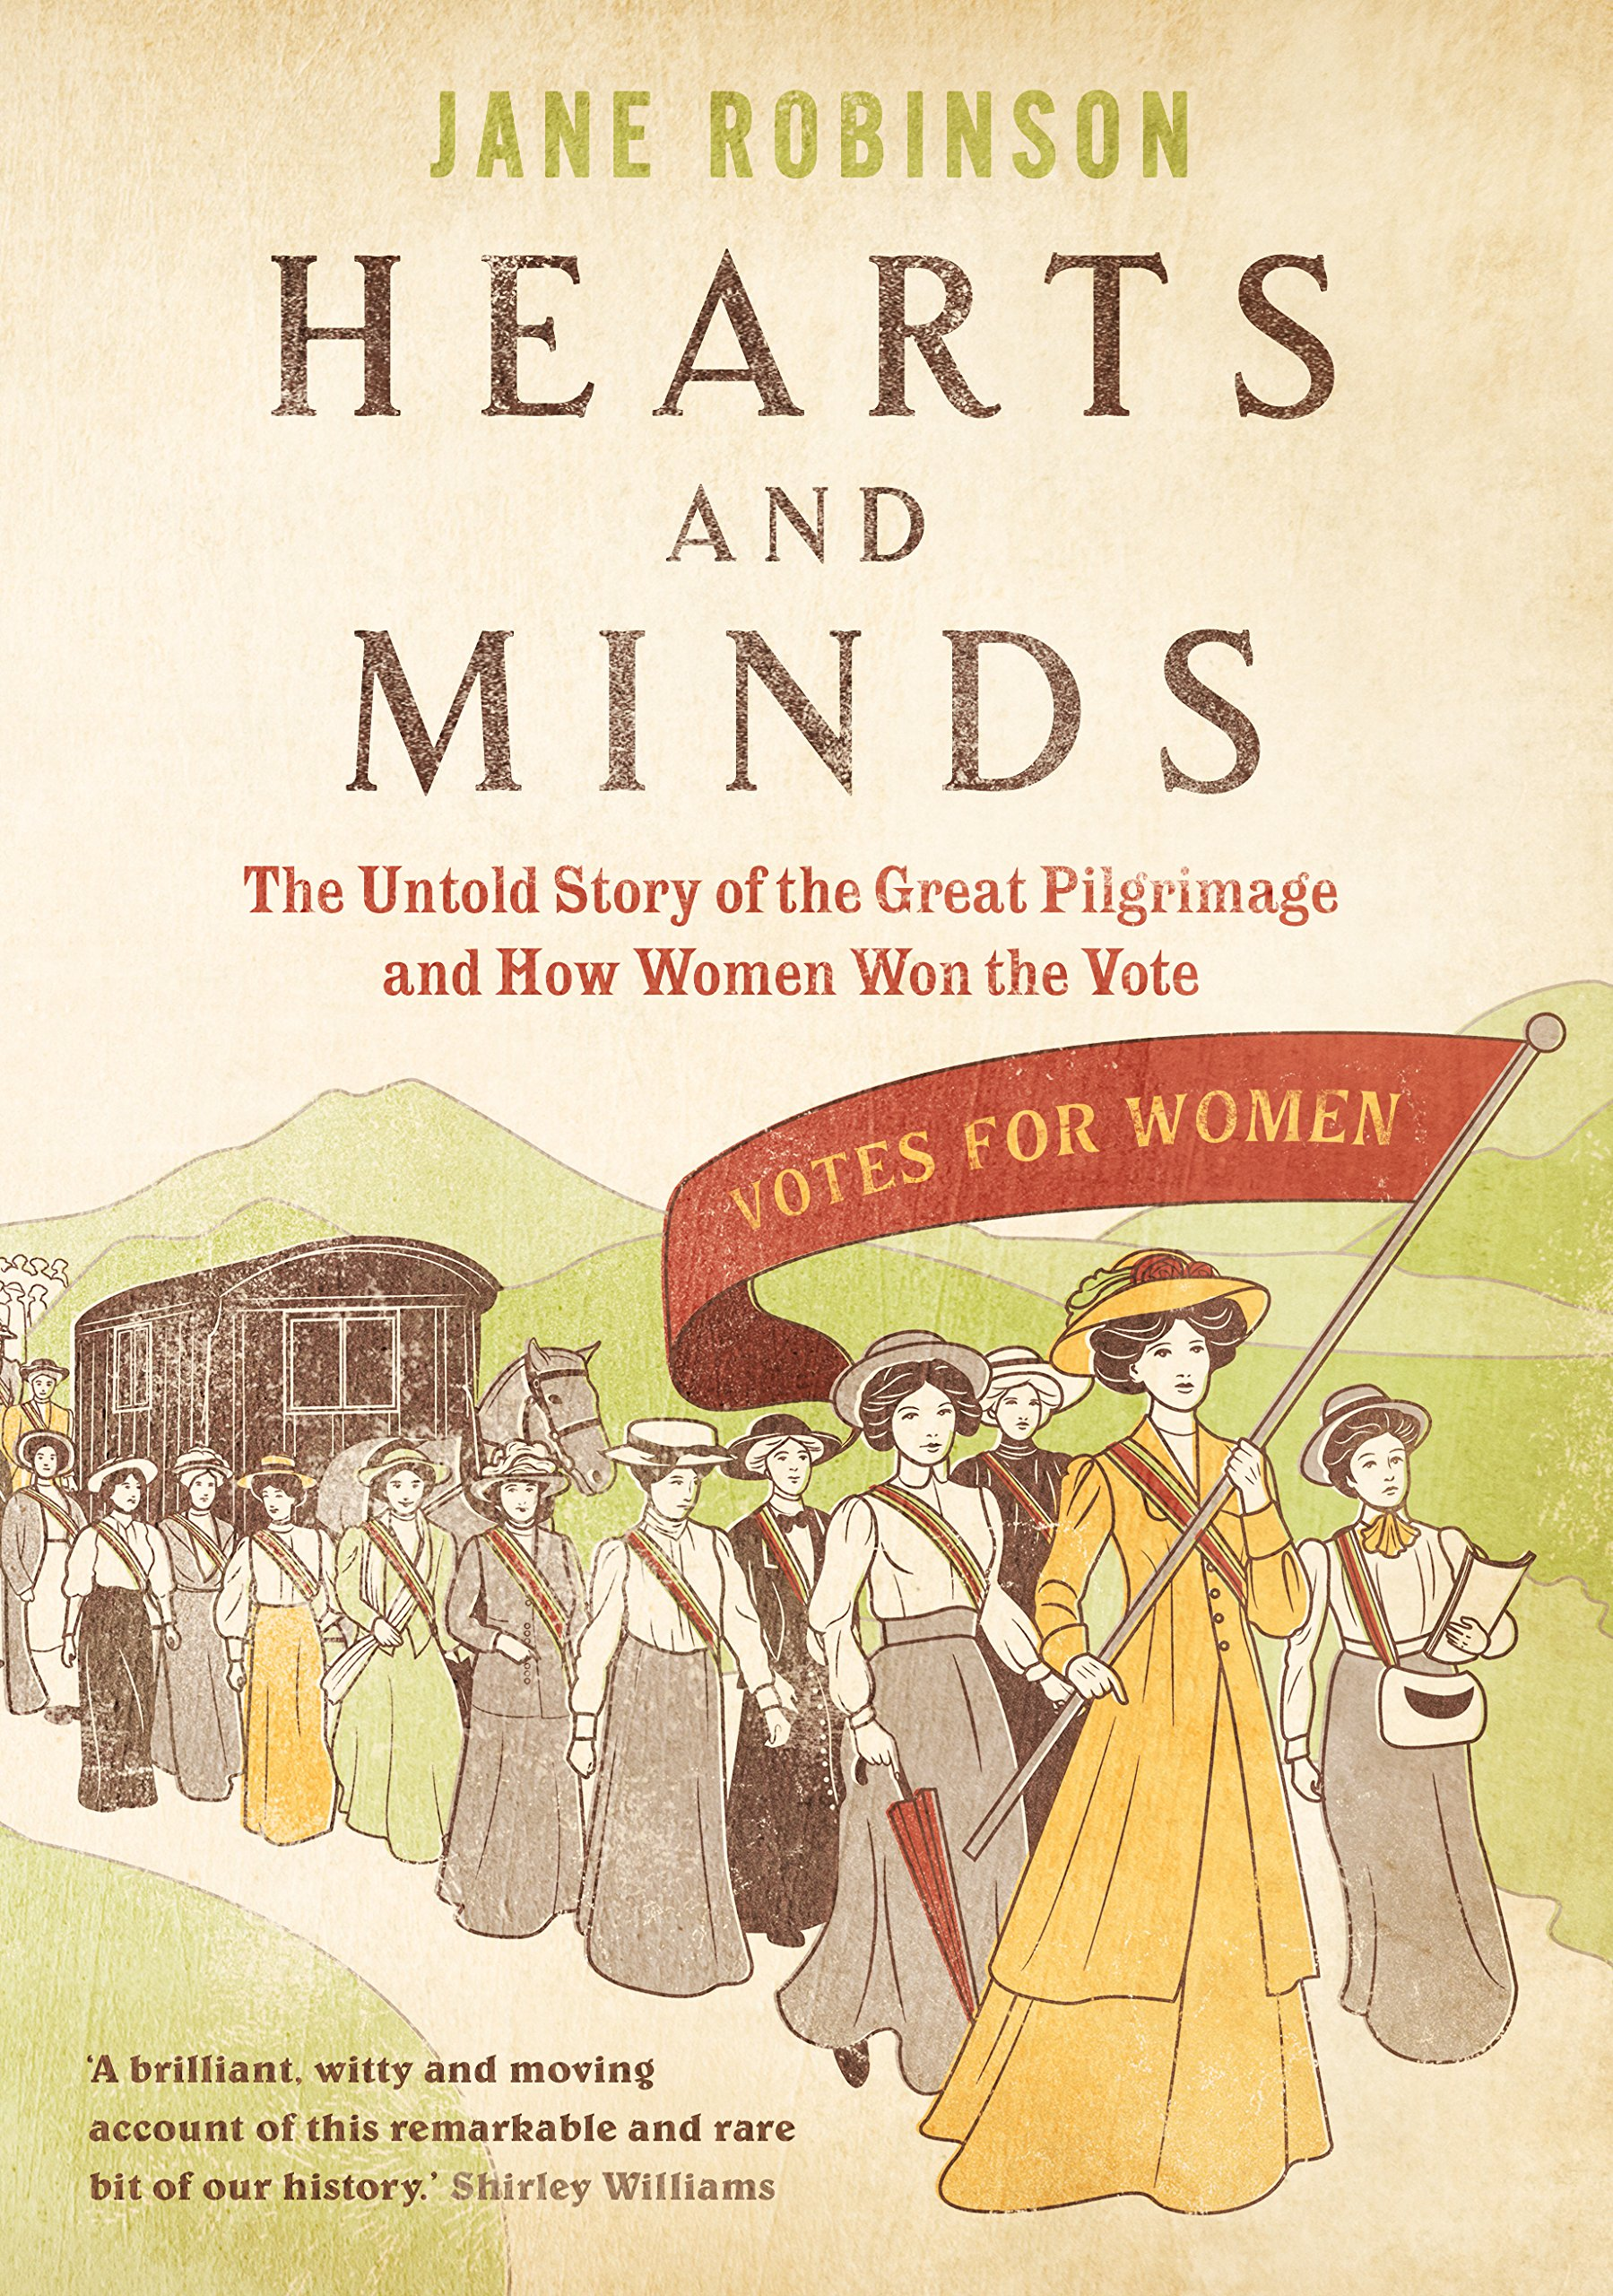 Hearts And Minds: The Untold Story of the Great Pilgrimage and How Women Won the Vote PDF